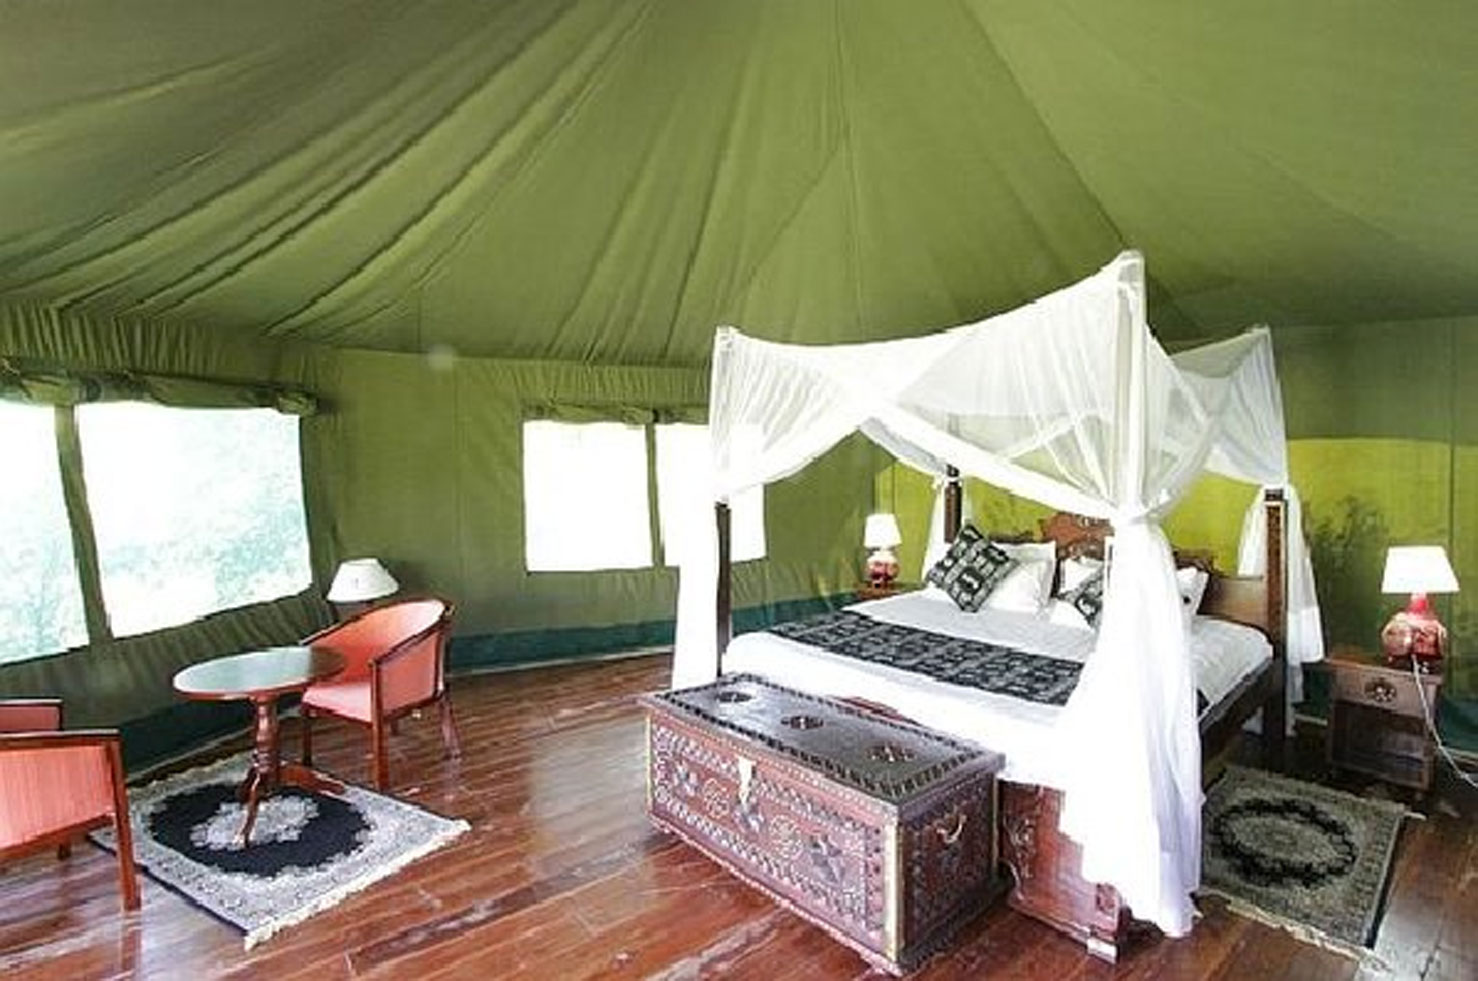 Diani_travel_center_diani_tours_and_safaris_3_Days_masai_mara-Nairobi